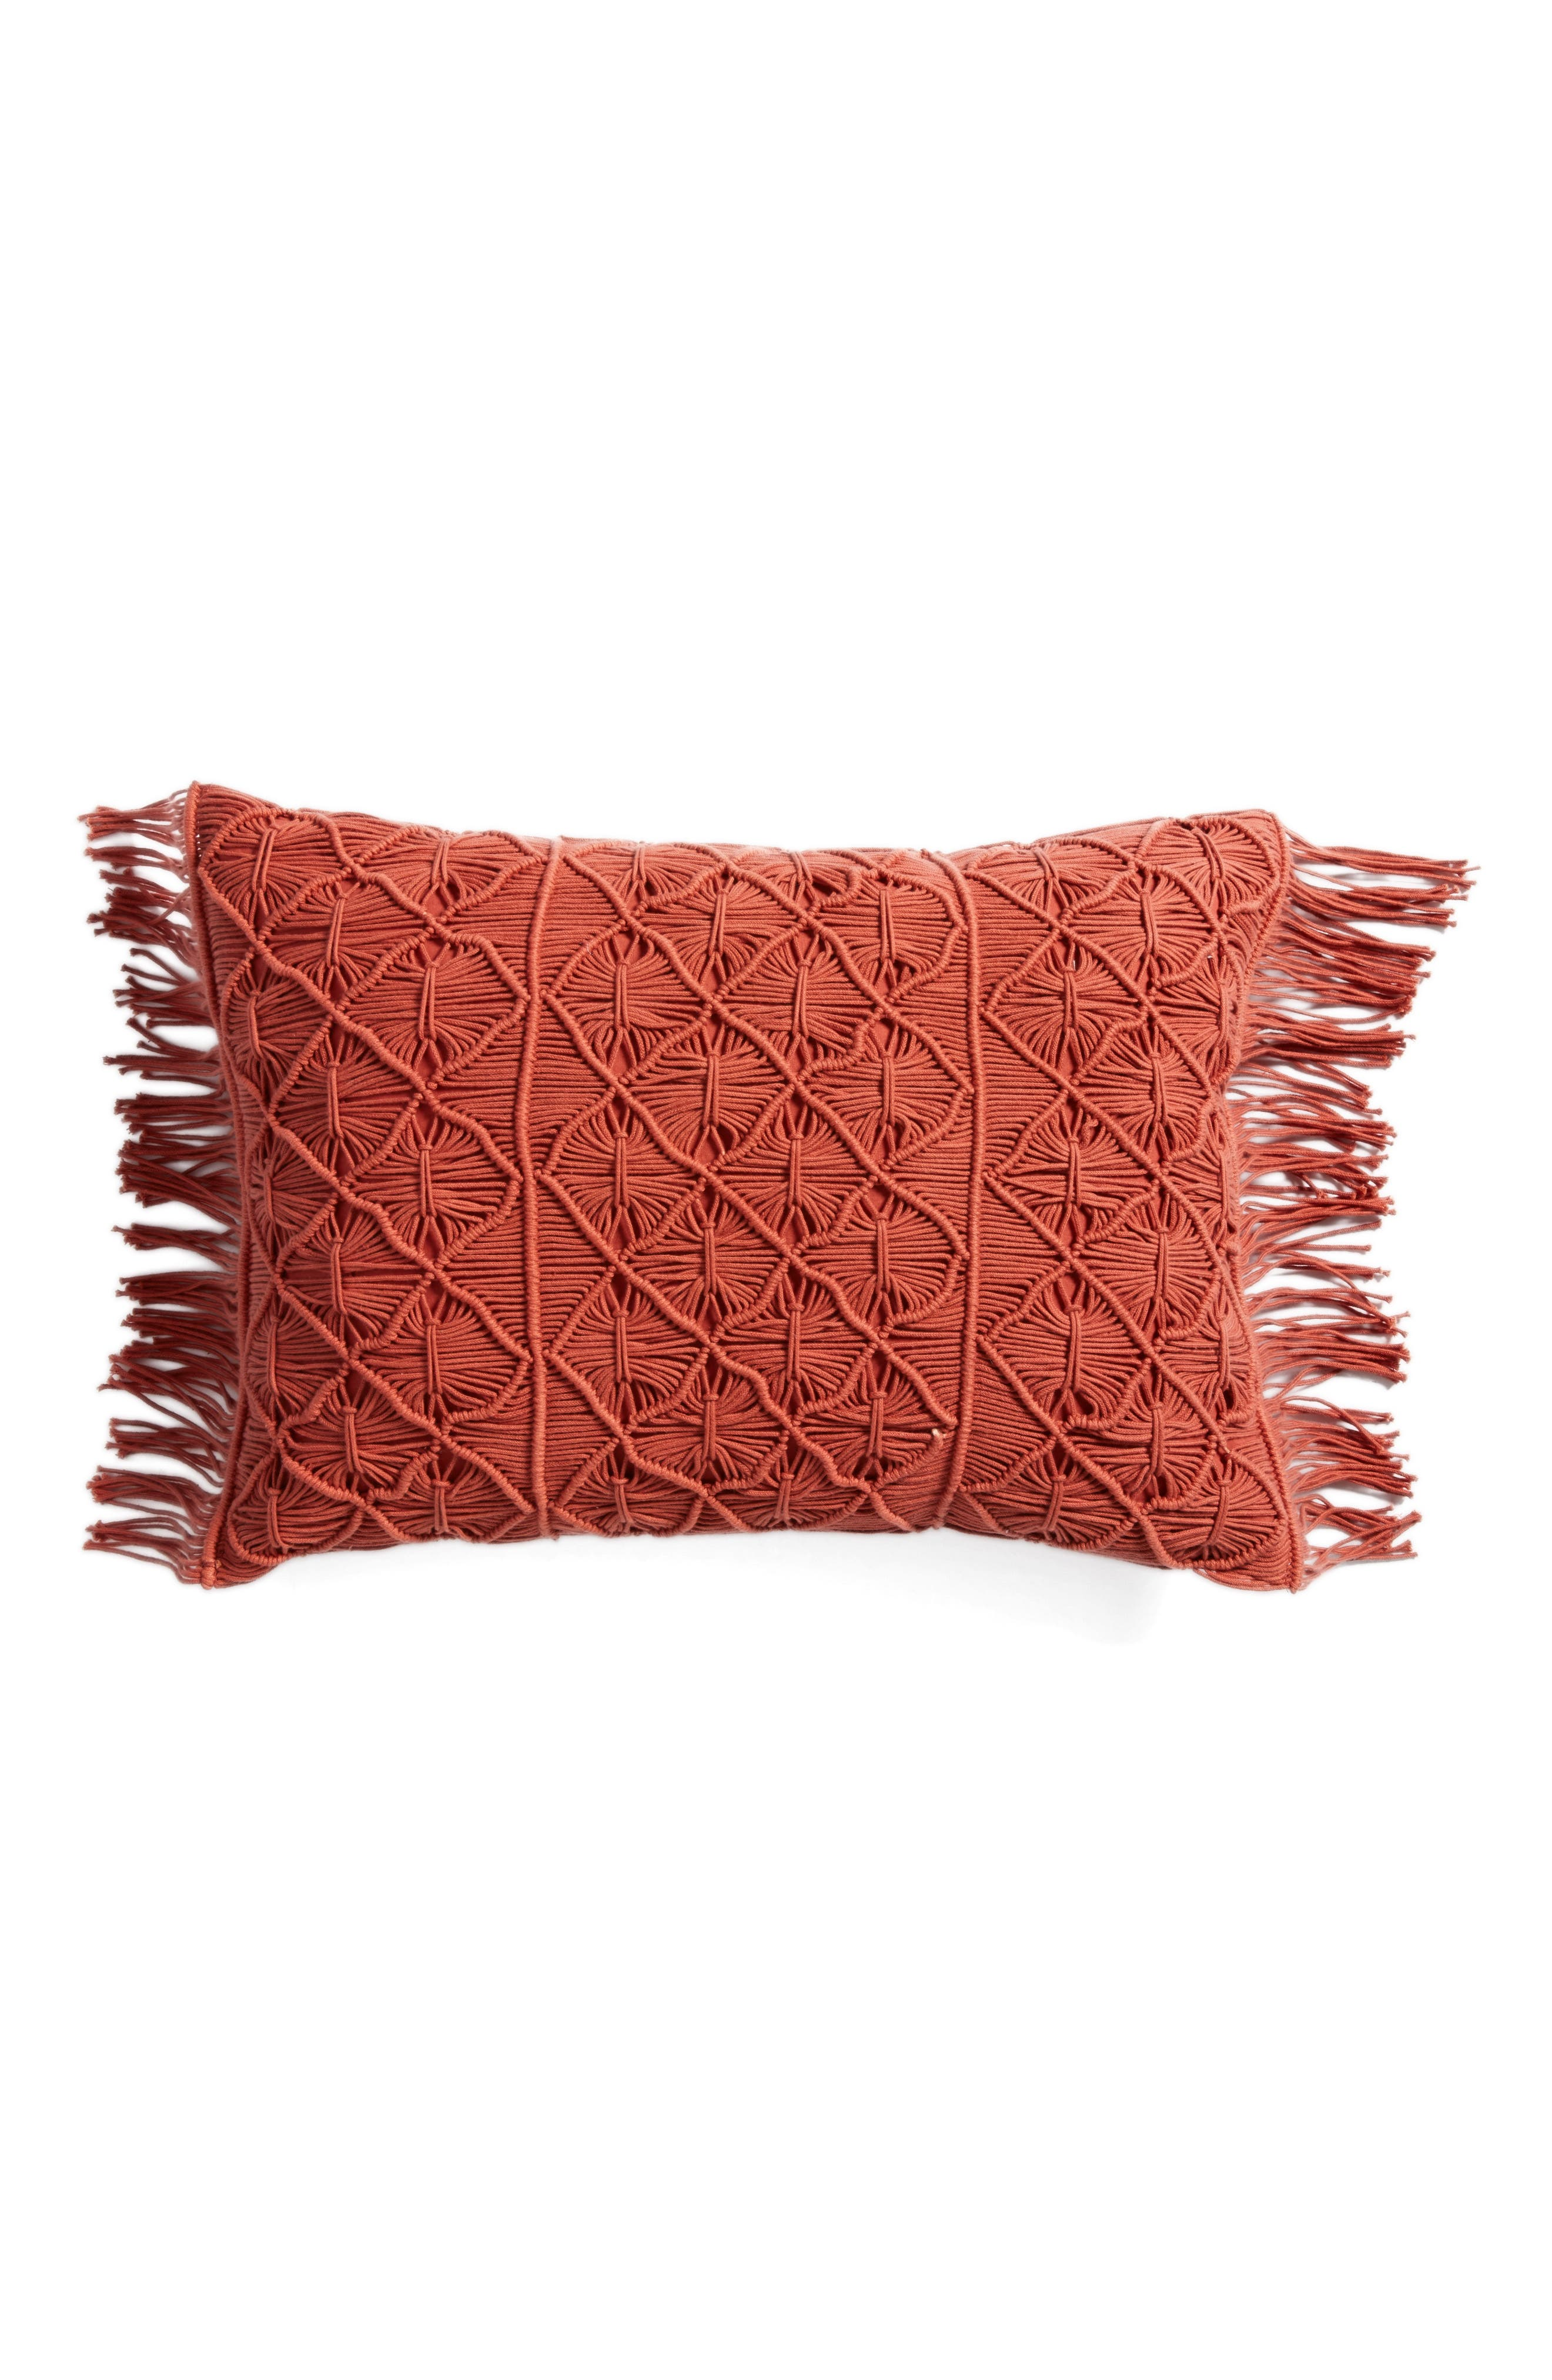 Nordstrom at Home Macramé Accent Pillow